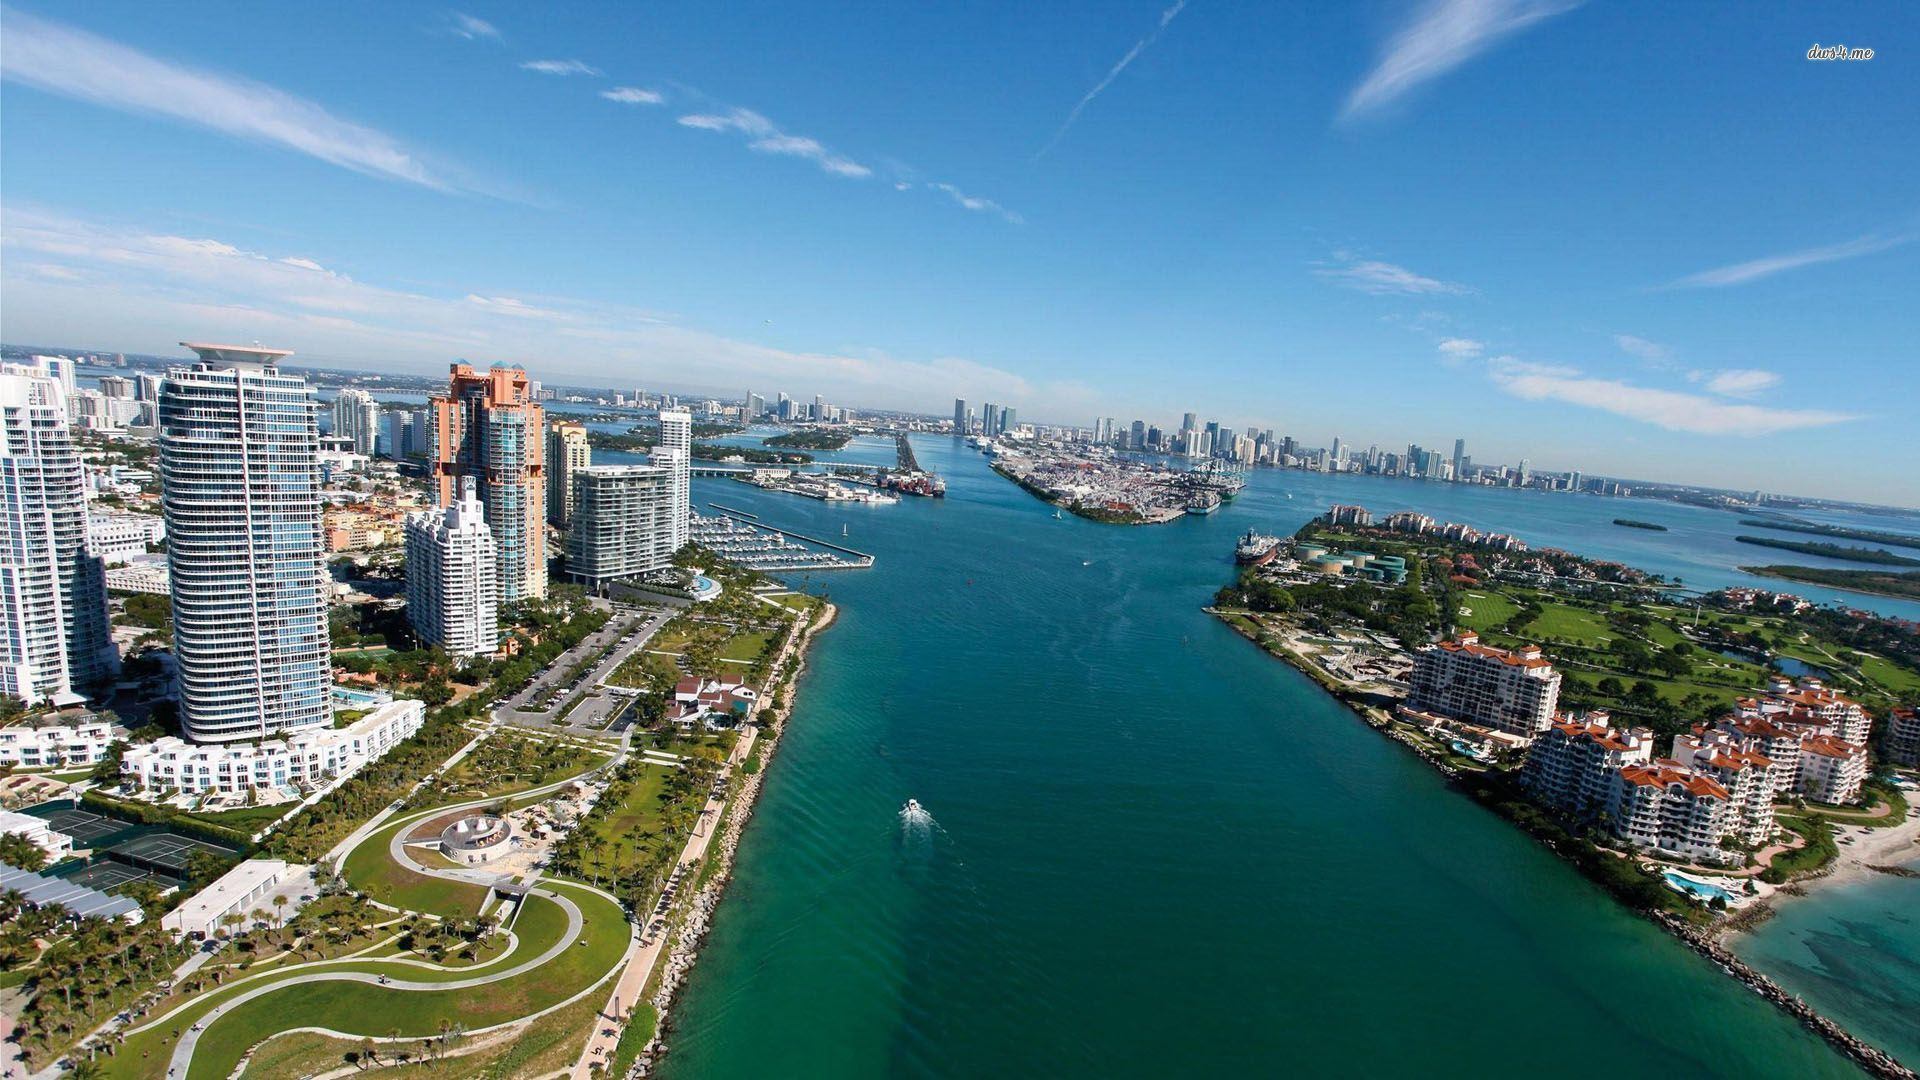 Awesome Downtown Miami Wallpapers In Full HD